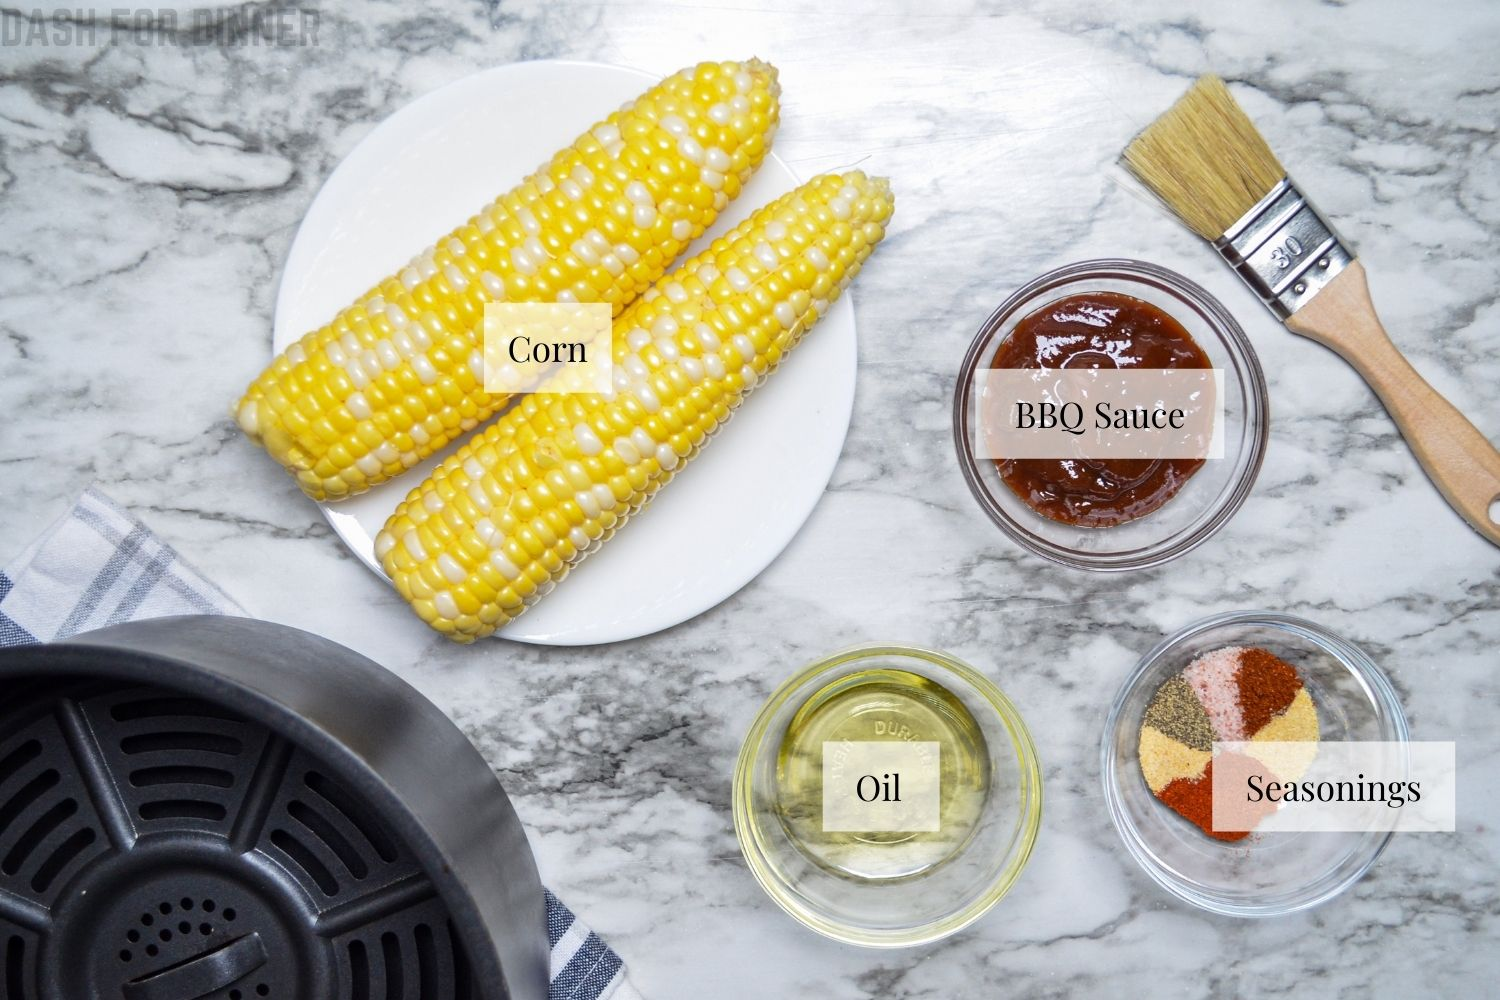 The ingredients needed to make air fryer corn ribs.